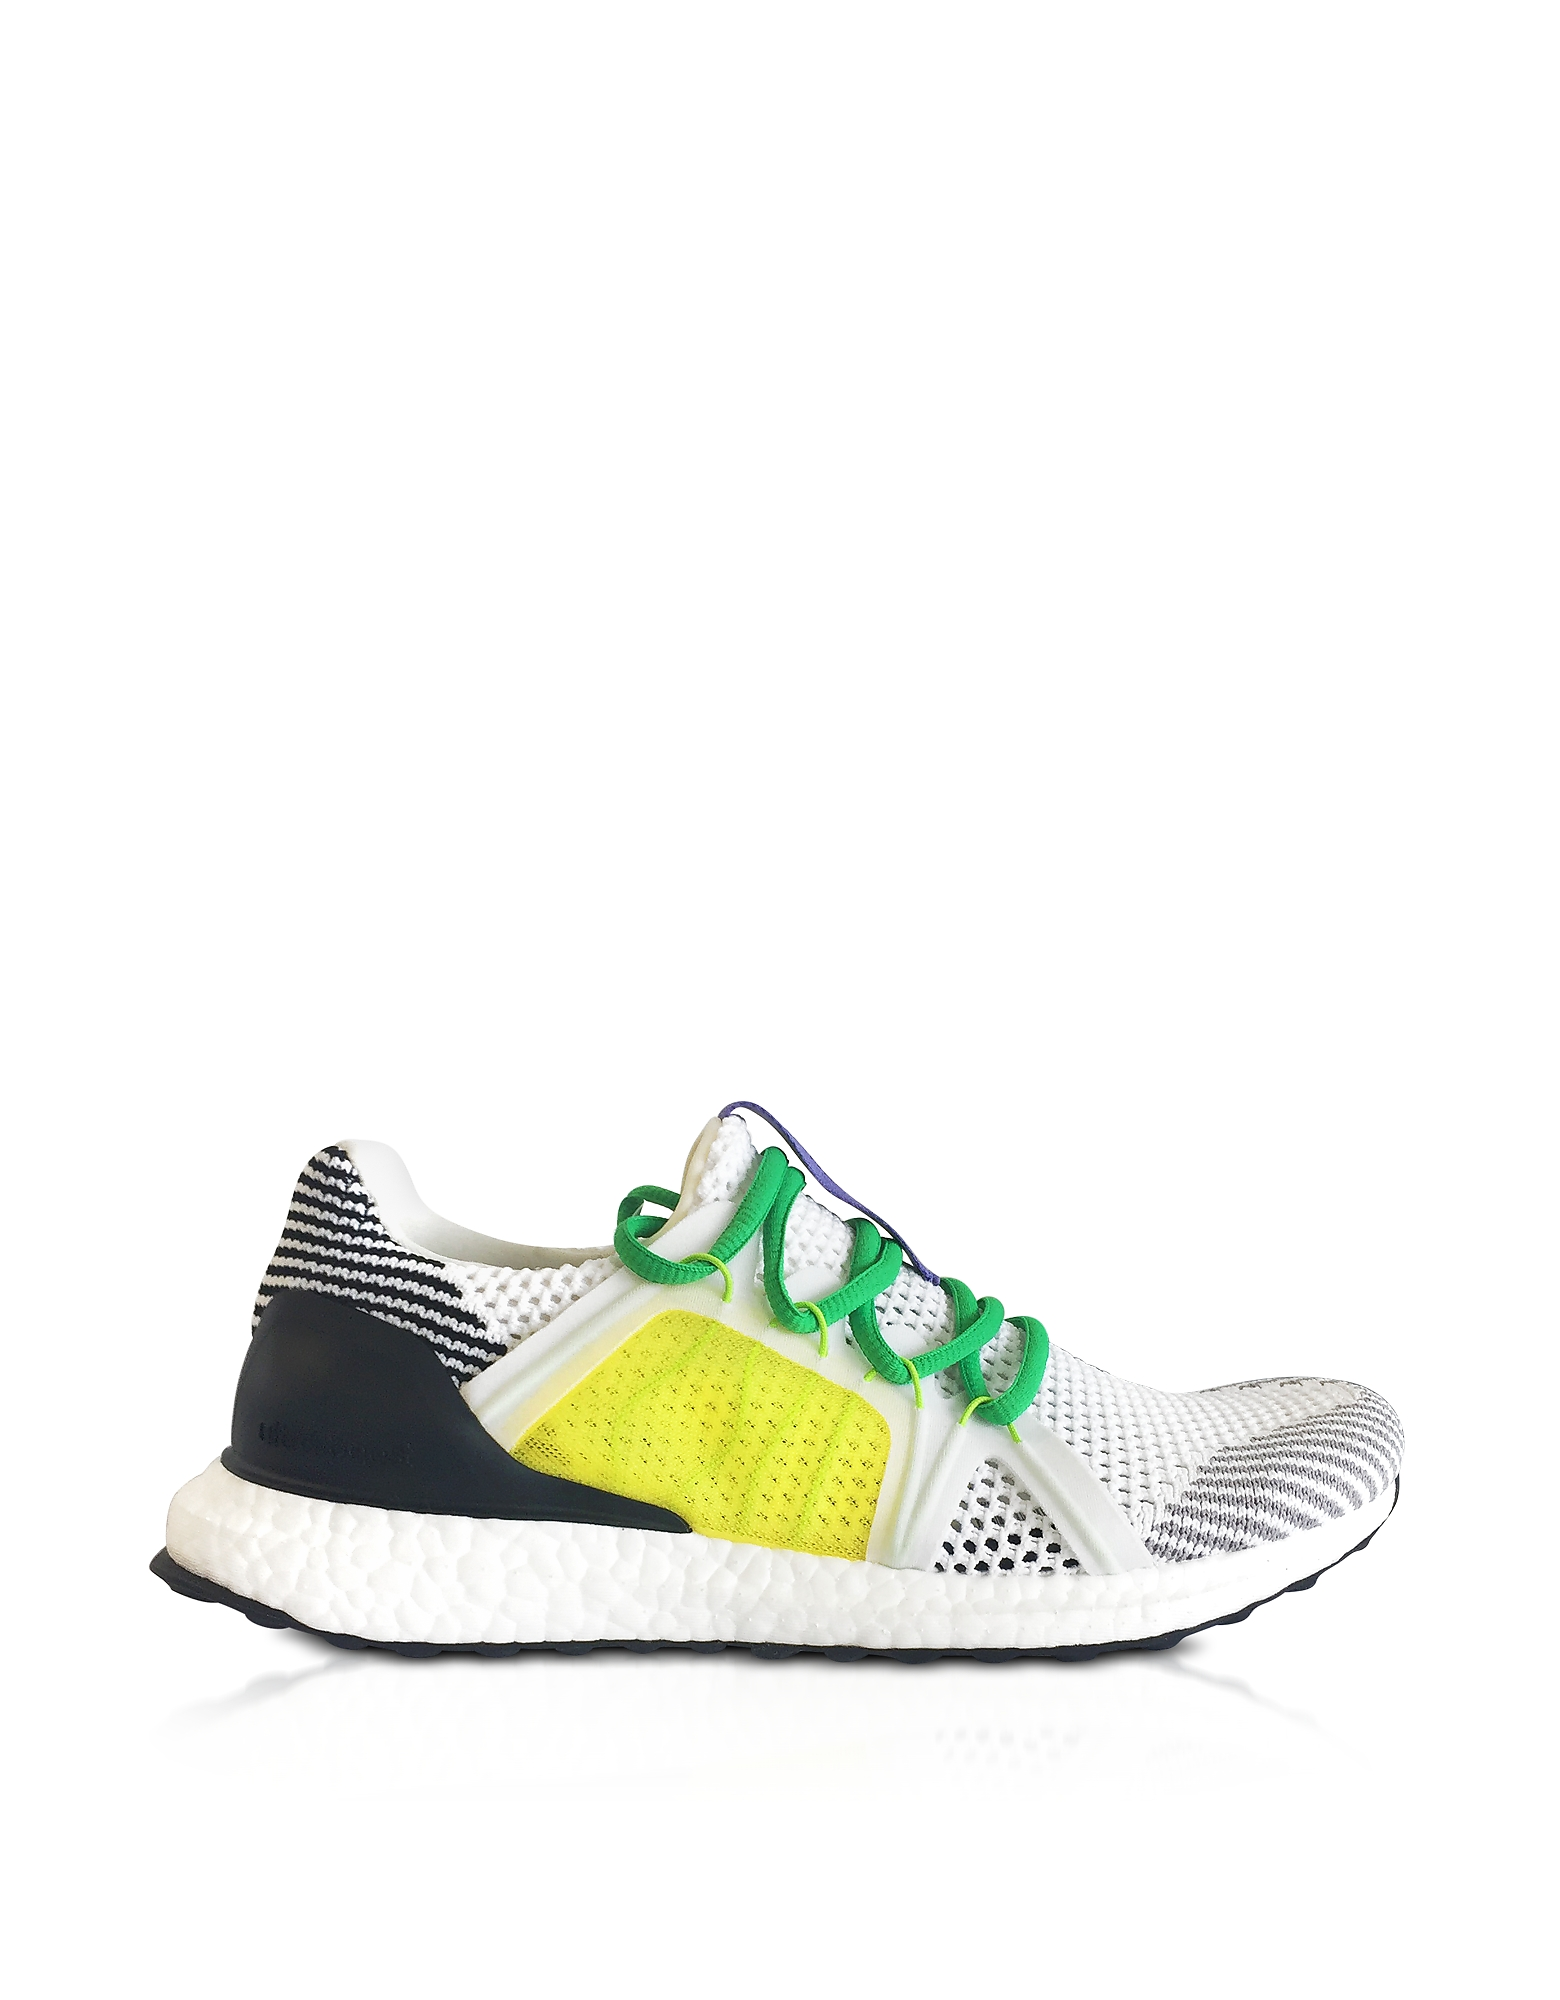 Adidas Stella McCartney Shoes, Ultraboost S White Running Sneakers